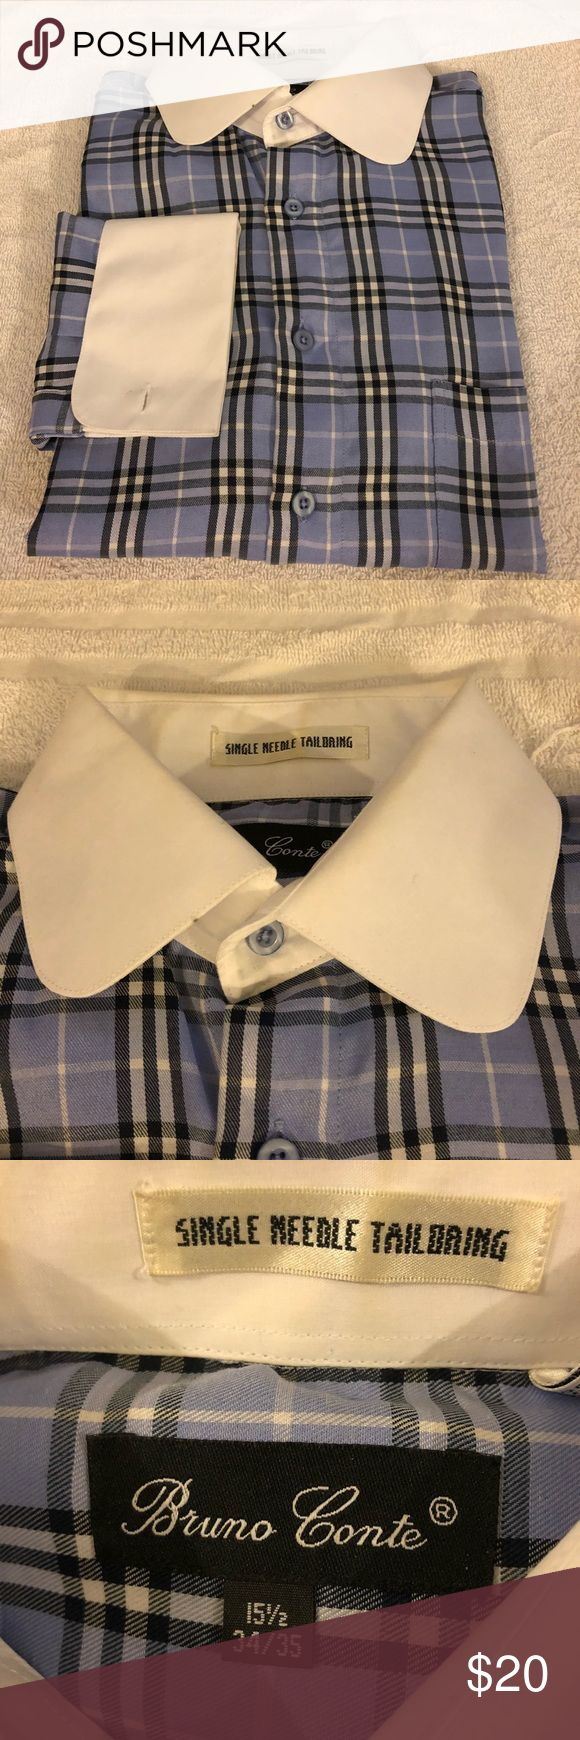 Bruno Conte Blue Plaid French Cuff Shirt 15.5 Bruno Conte Blue, White and Navy Plaid White Collar French Cuff Dress Shirt size 15.5 34/35! Great condition!  Please make reasonable offers and bundle! Ask questions :) Bruno Conte Shirts Dress Shirts